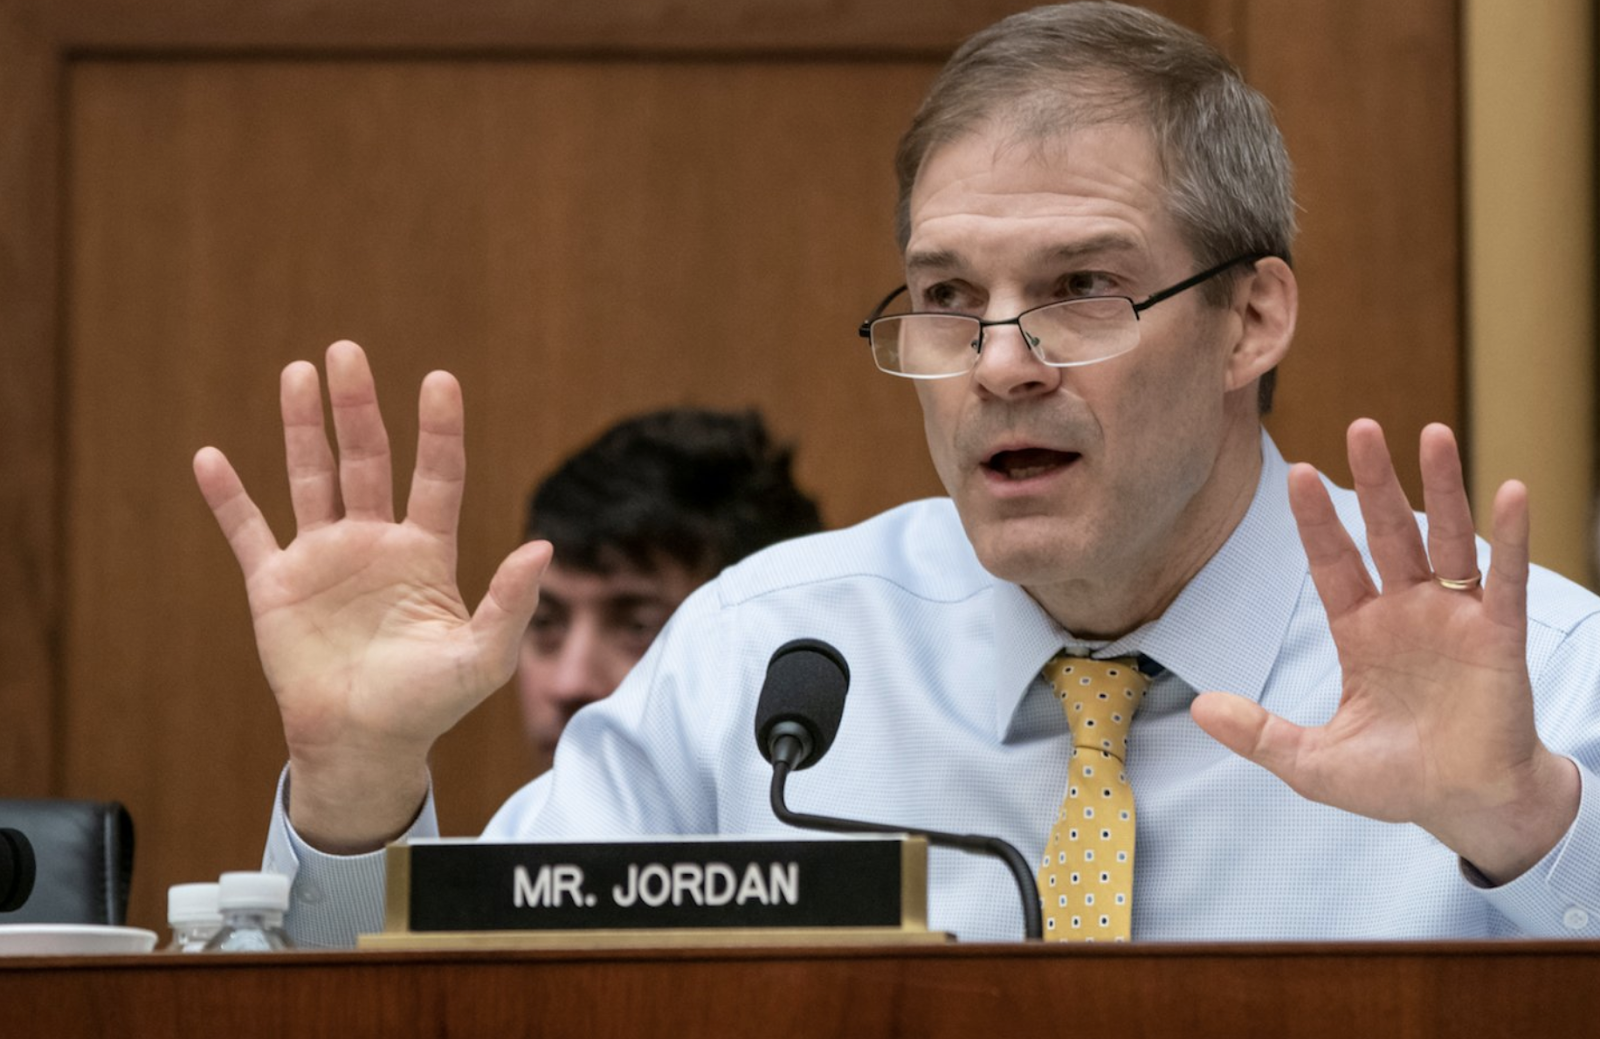 Rep. Jim Jordan (R-OH) engaged in a heated exchange with Cohen on his credibility. Photo: Scott J. Applewhite/ AP